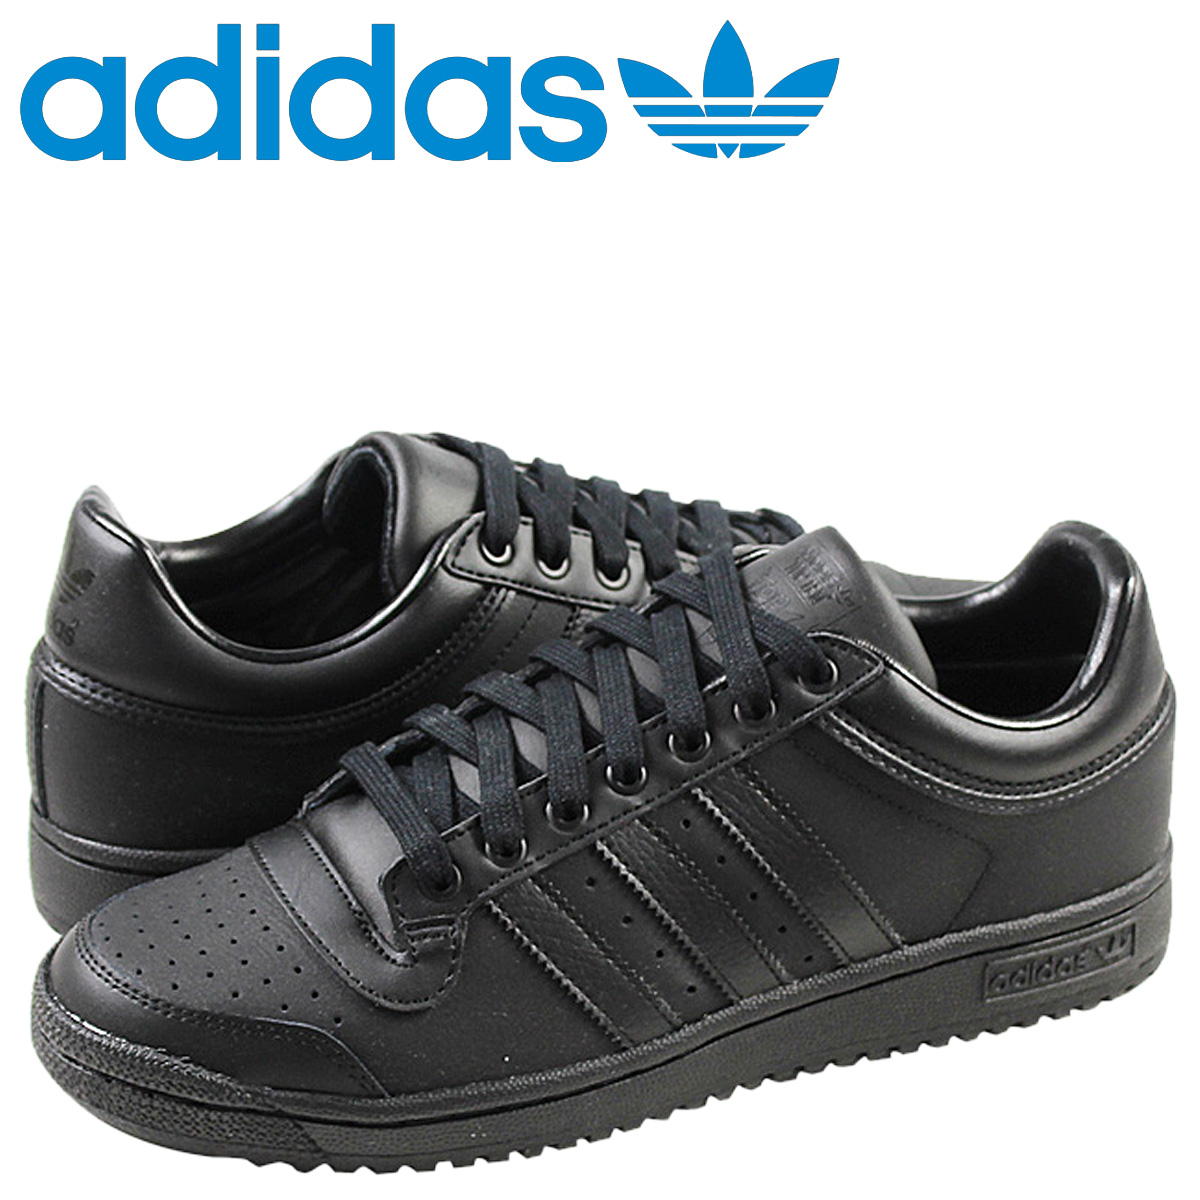 8a4d60580cd2e Whats up Sports  adidas Originals adidas originals top ten Lo ...